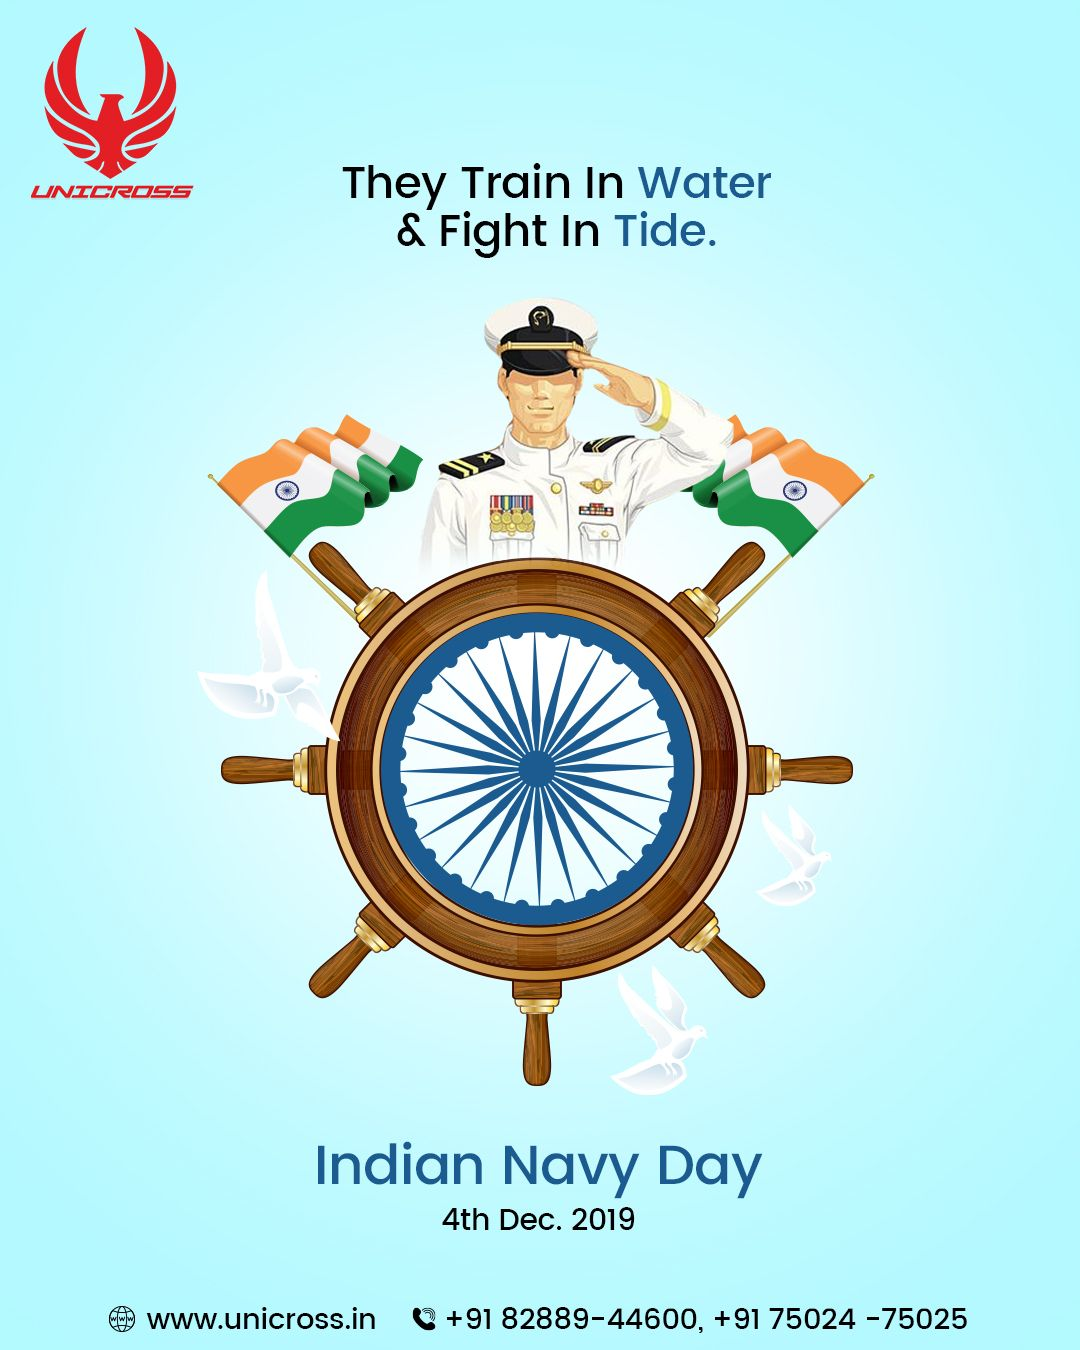 They Are The Sailors They Are The Storm They Are The Heroes Let S Salute Indian Navy Personnel And Their Selfless Serv Indian Navy Day Navy Day Indian Navy